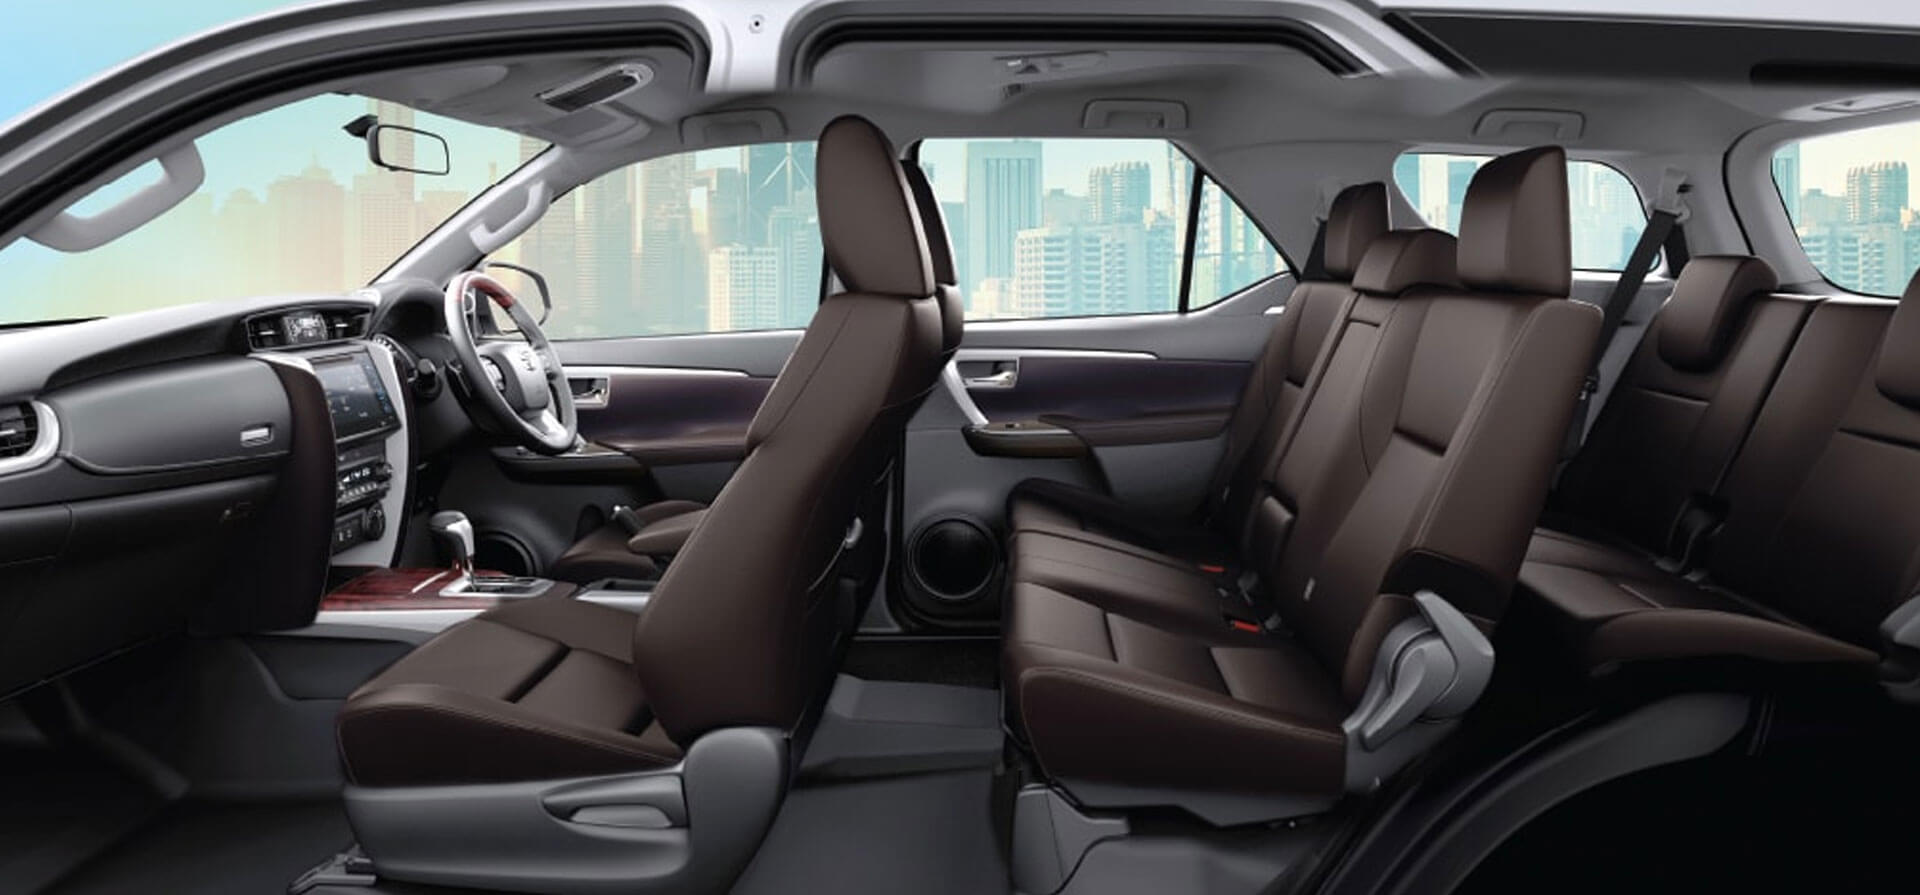 Toyota Fortuner Interior Middle Row